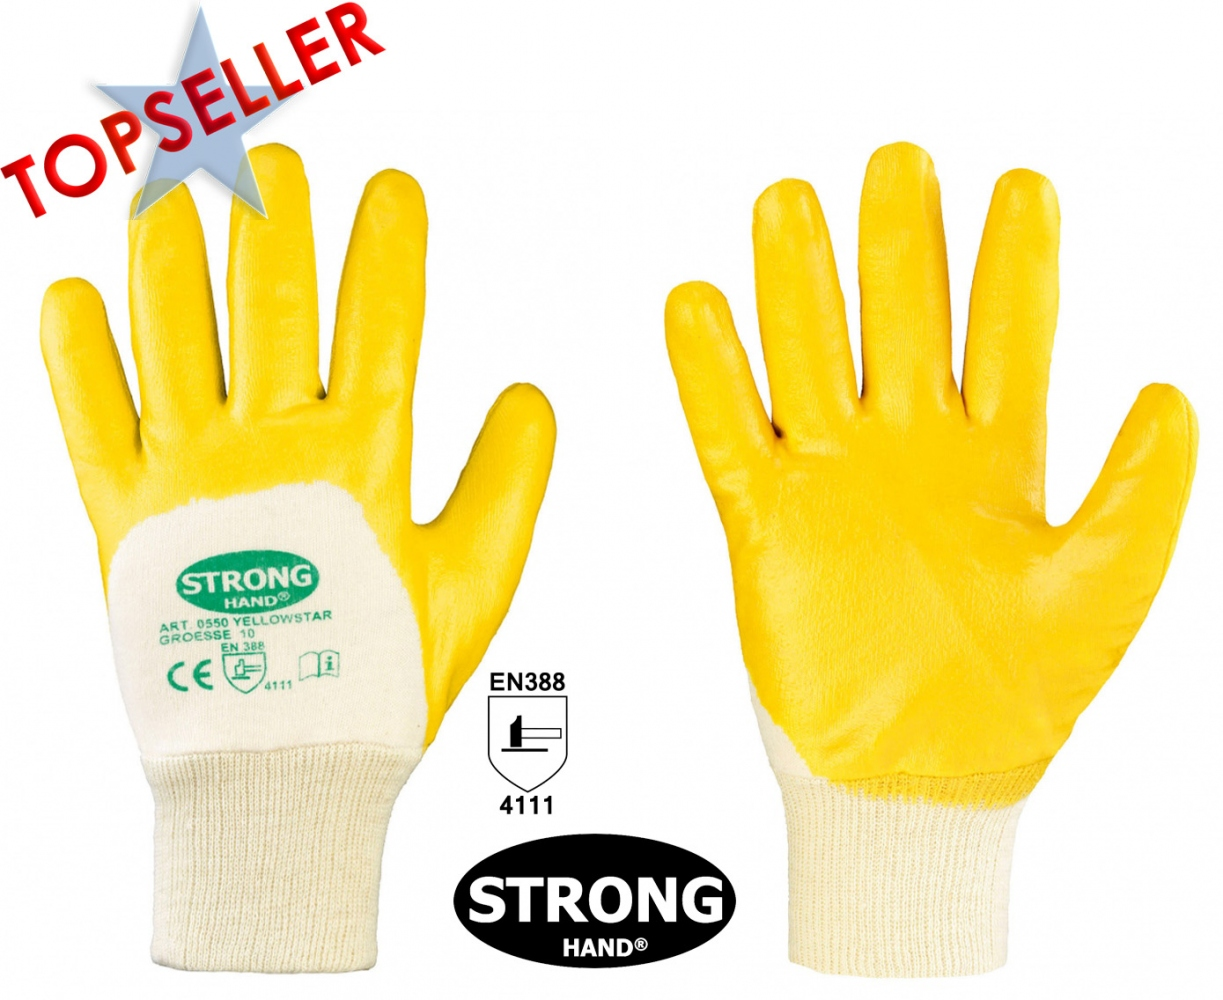 pics/Feldtmann 2016/E.I.S. Topseller/stronghand-0550-yellowstar-nitrile-coated-cotton-working-gloves-en388-7g-topseller.jpg